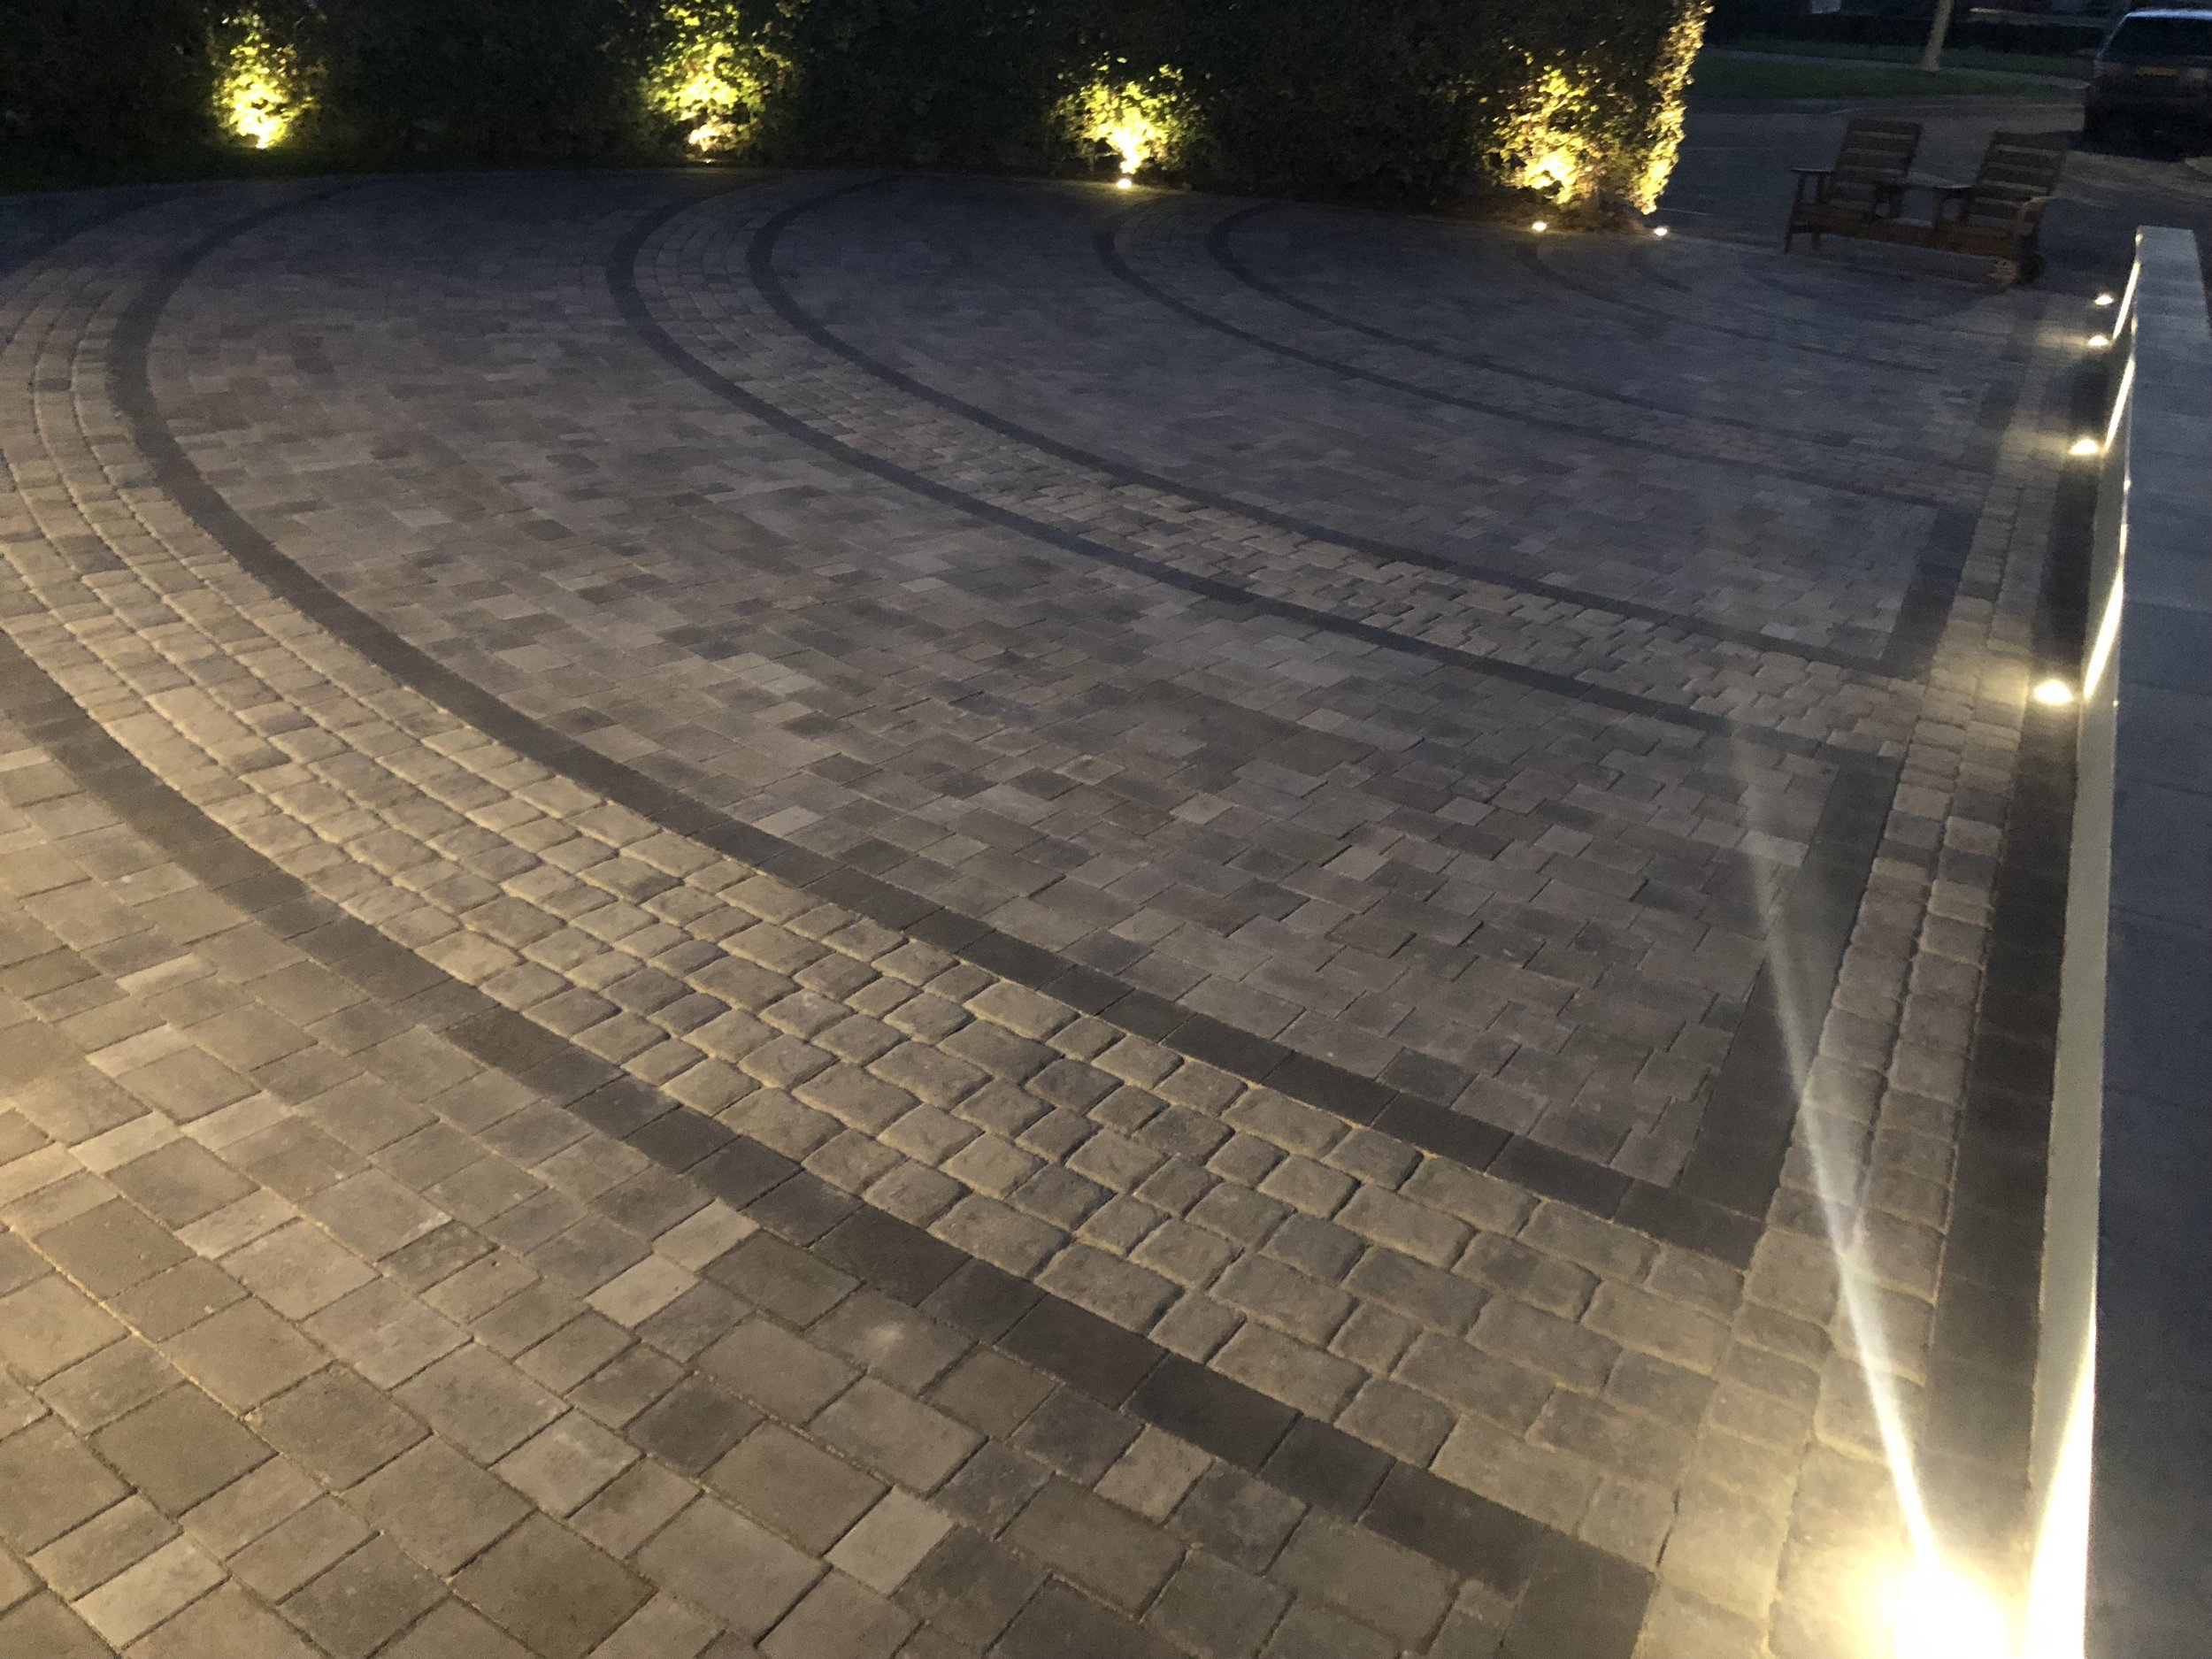 A Mixed block driveway using Beta and Regattawith lights on the surround, driveway installed in Bognor regis